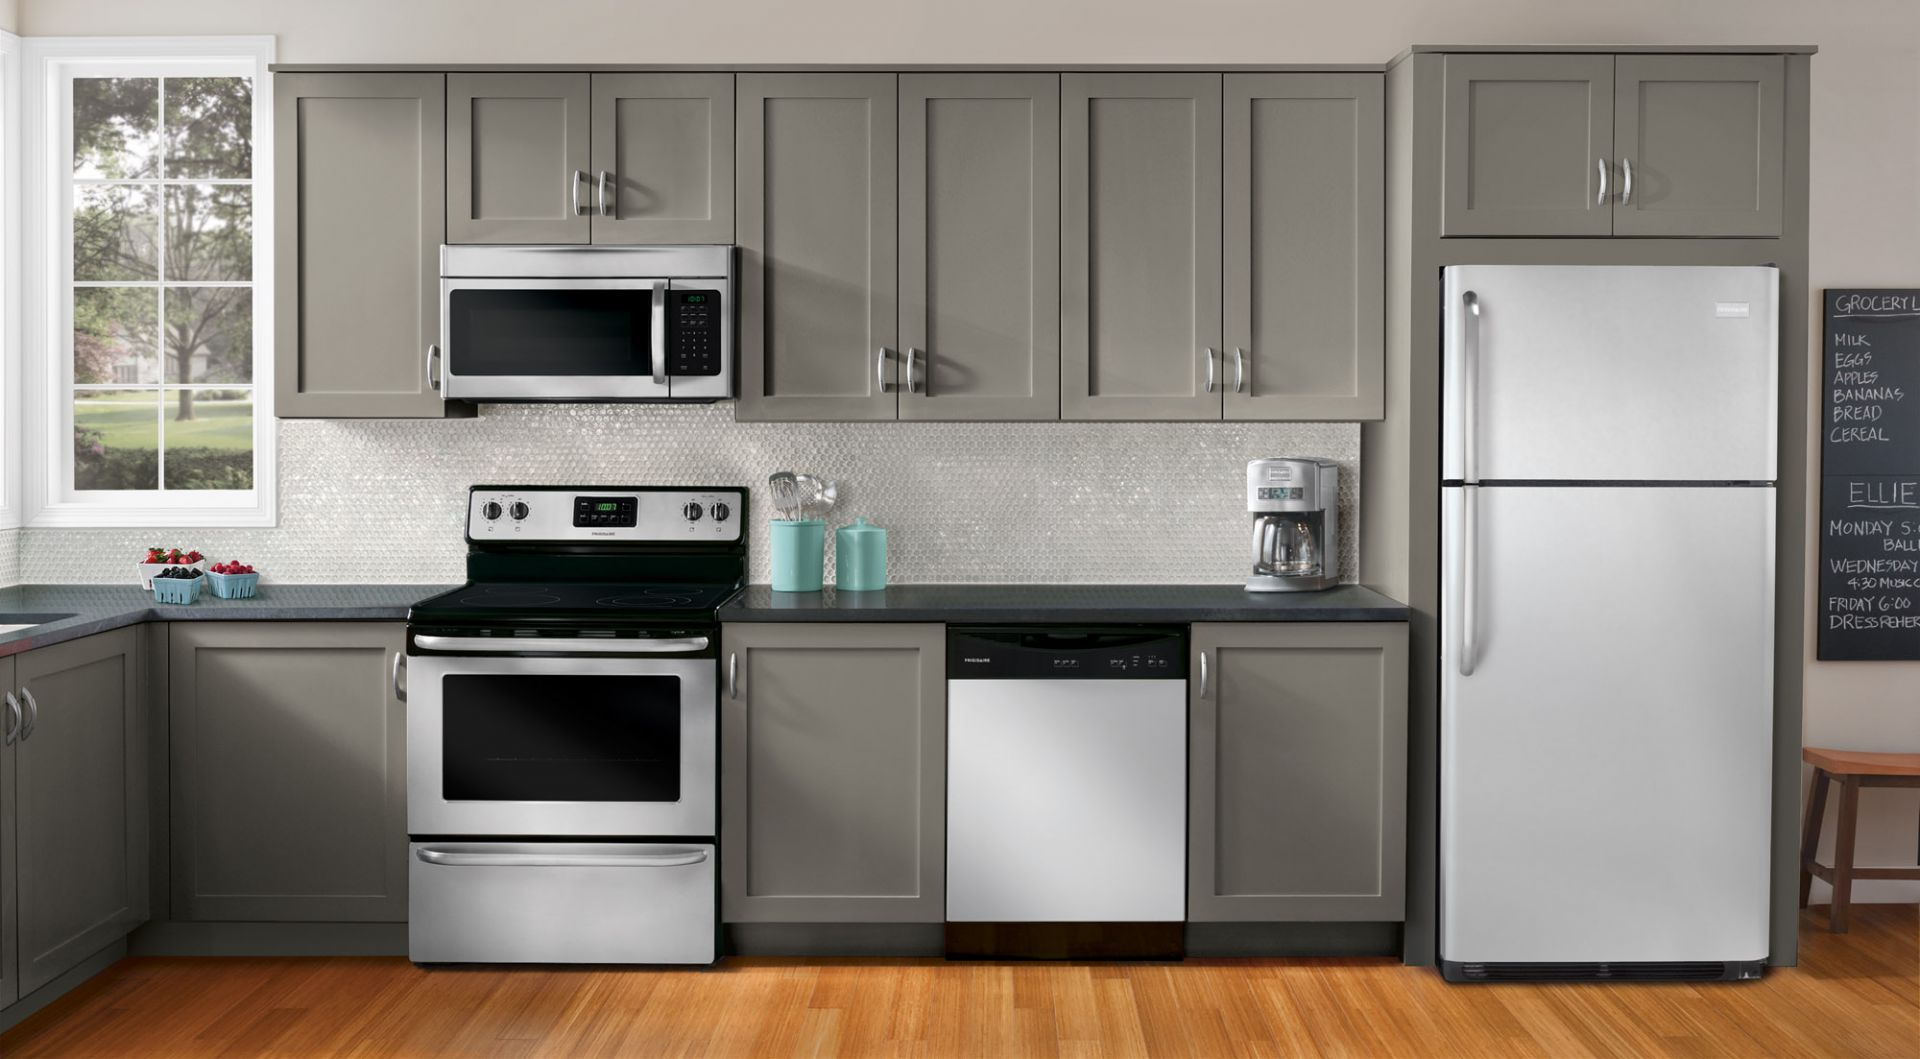 brilliant-discover-the-best-kitchen-appliance-packages-for-your-home-household-appliances-kitchen-appliance-packages